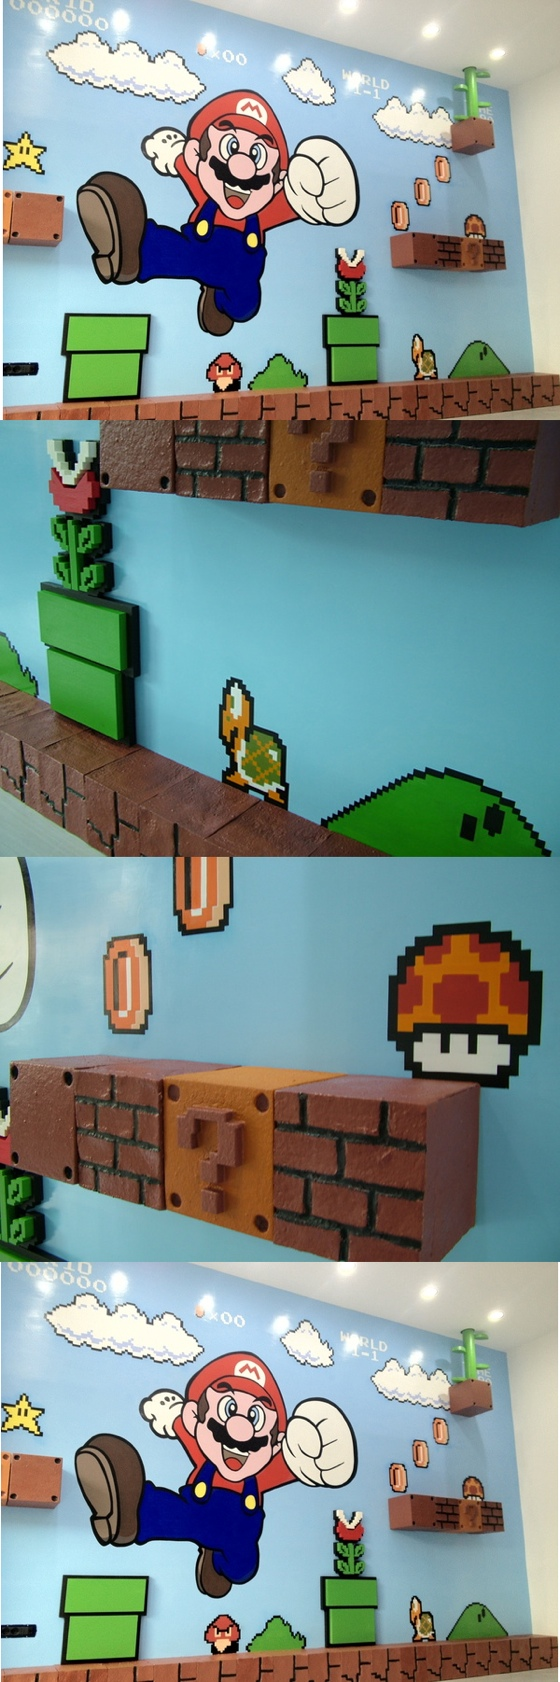 pin by kyle tilton on geeky house ideas mario zimmer super mario kinderzimmer. Black Bedroom Furniture Sets. Home Design Ideas